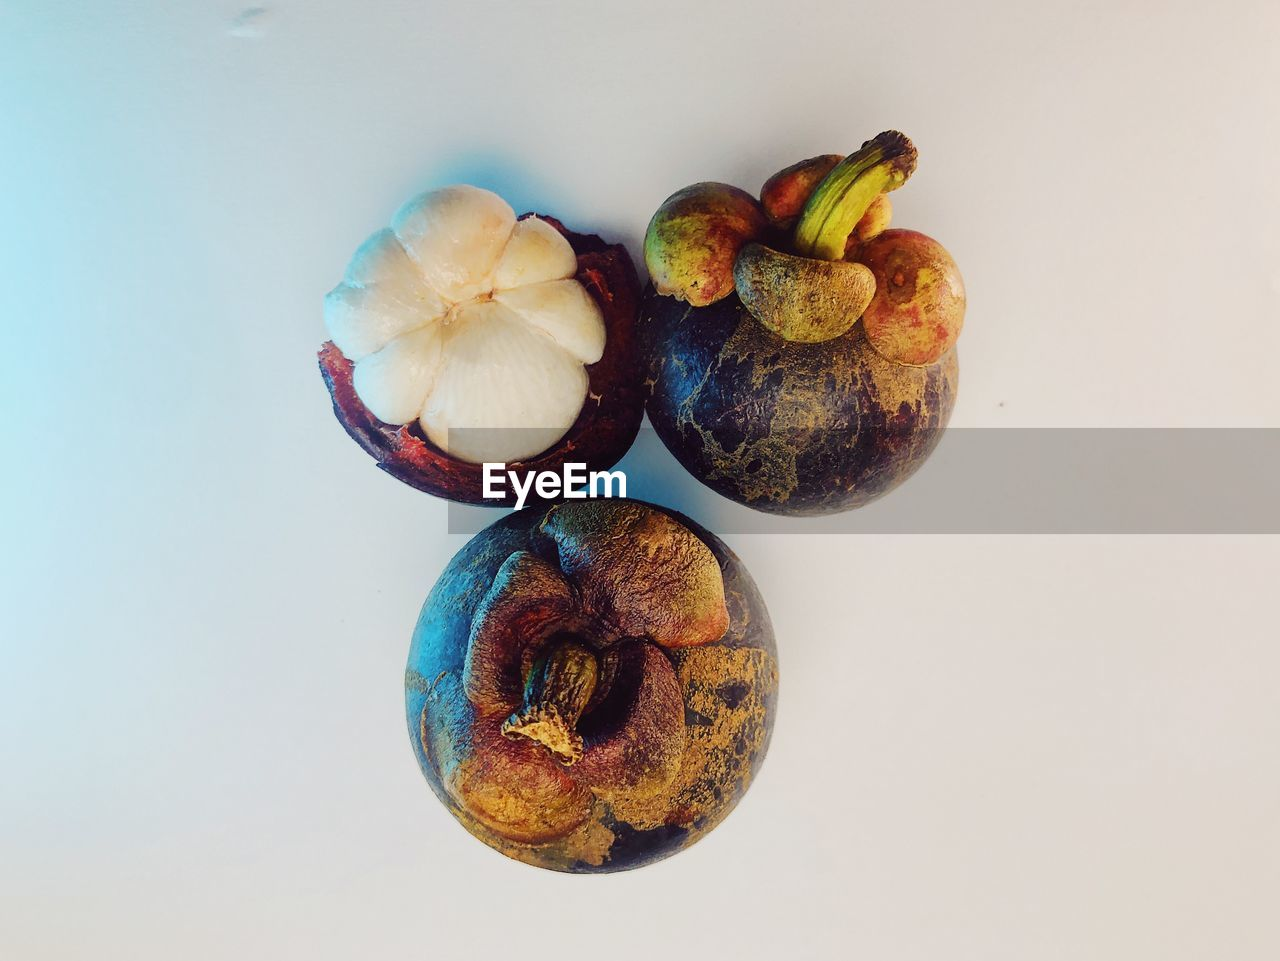 HIGH ANGLE VIEW OF FRUITS ON WHITE BACKGROUND